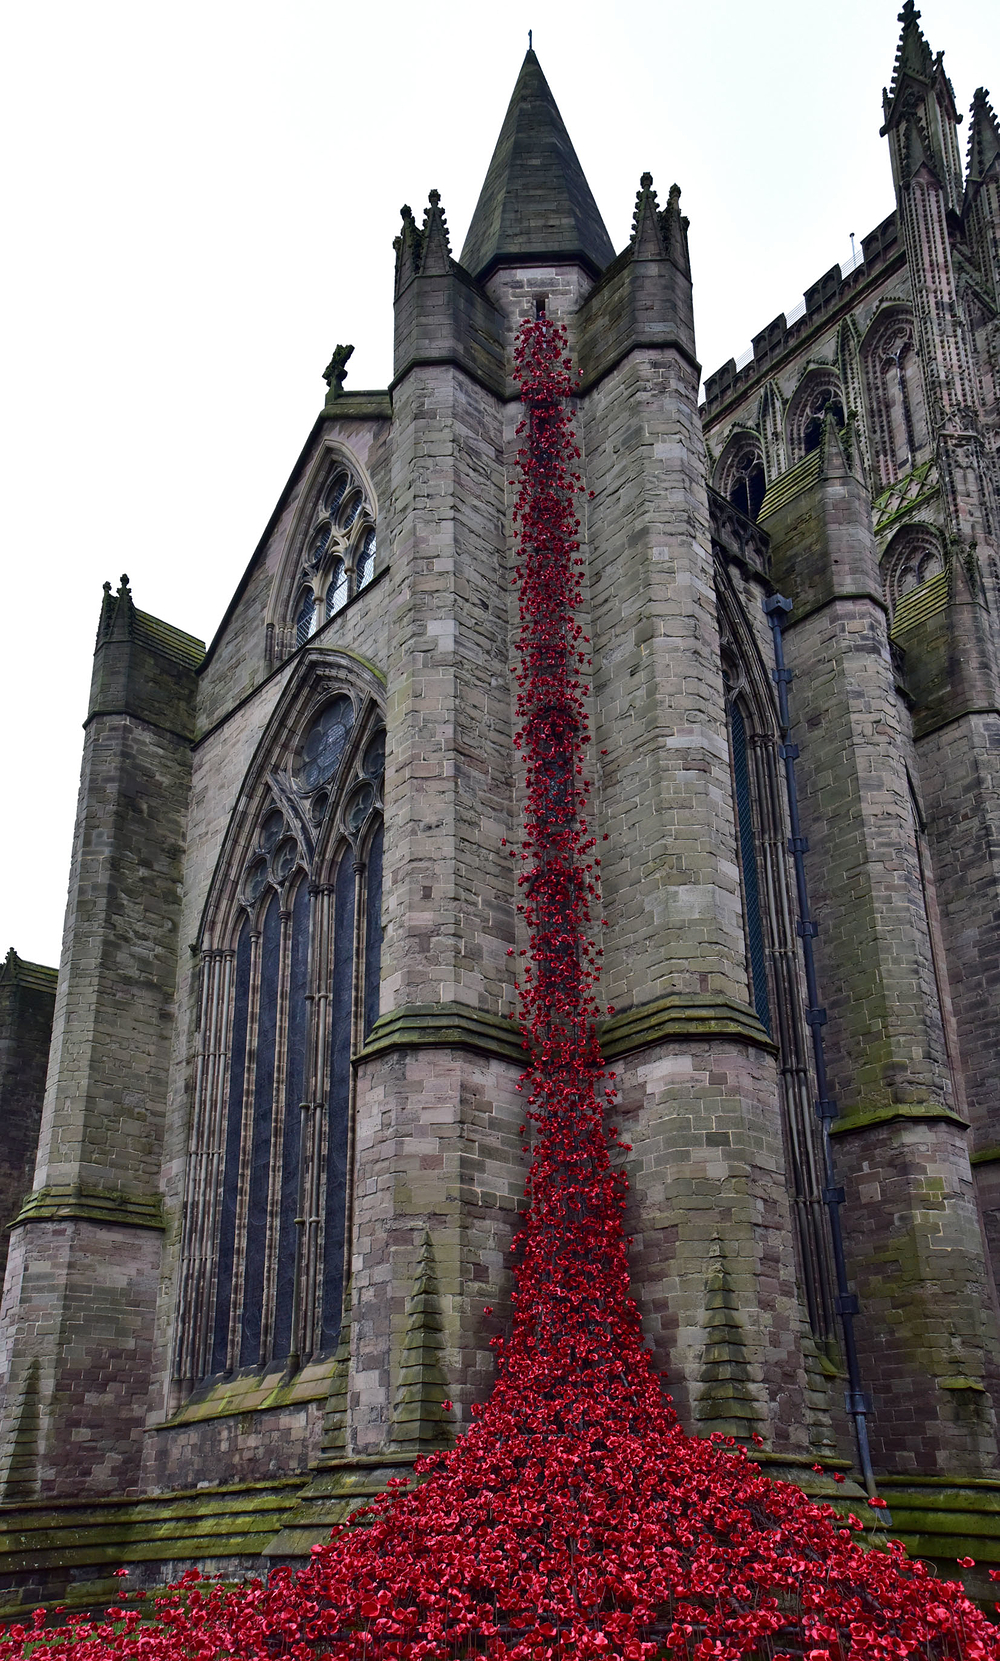 Poppies at Hereford Cathedral